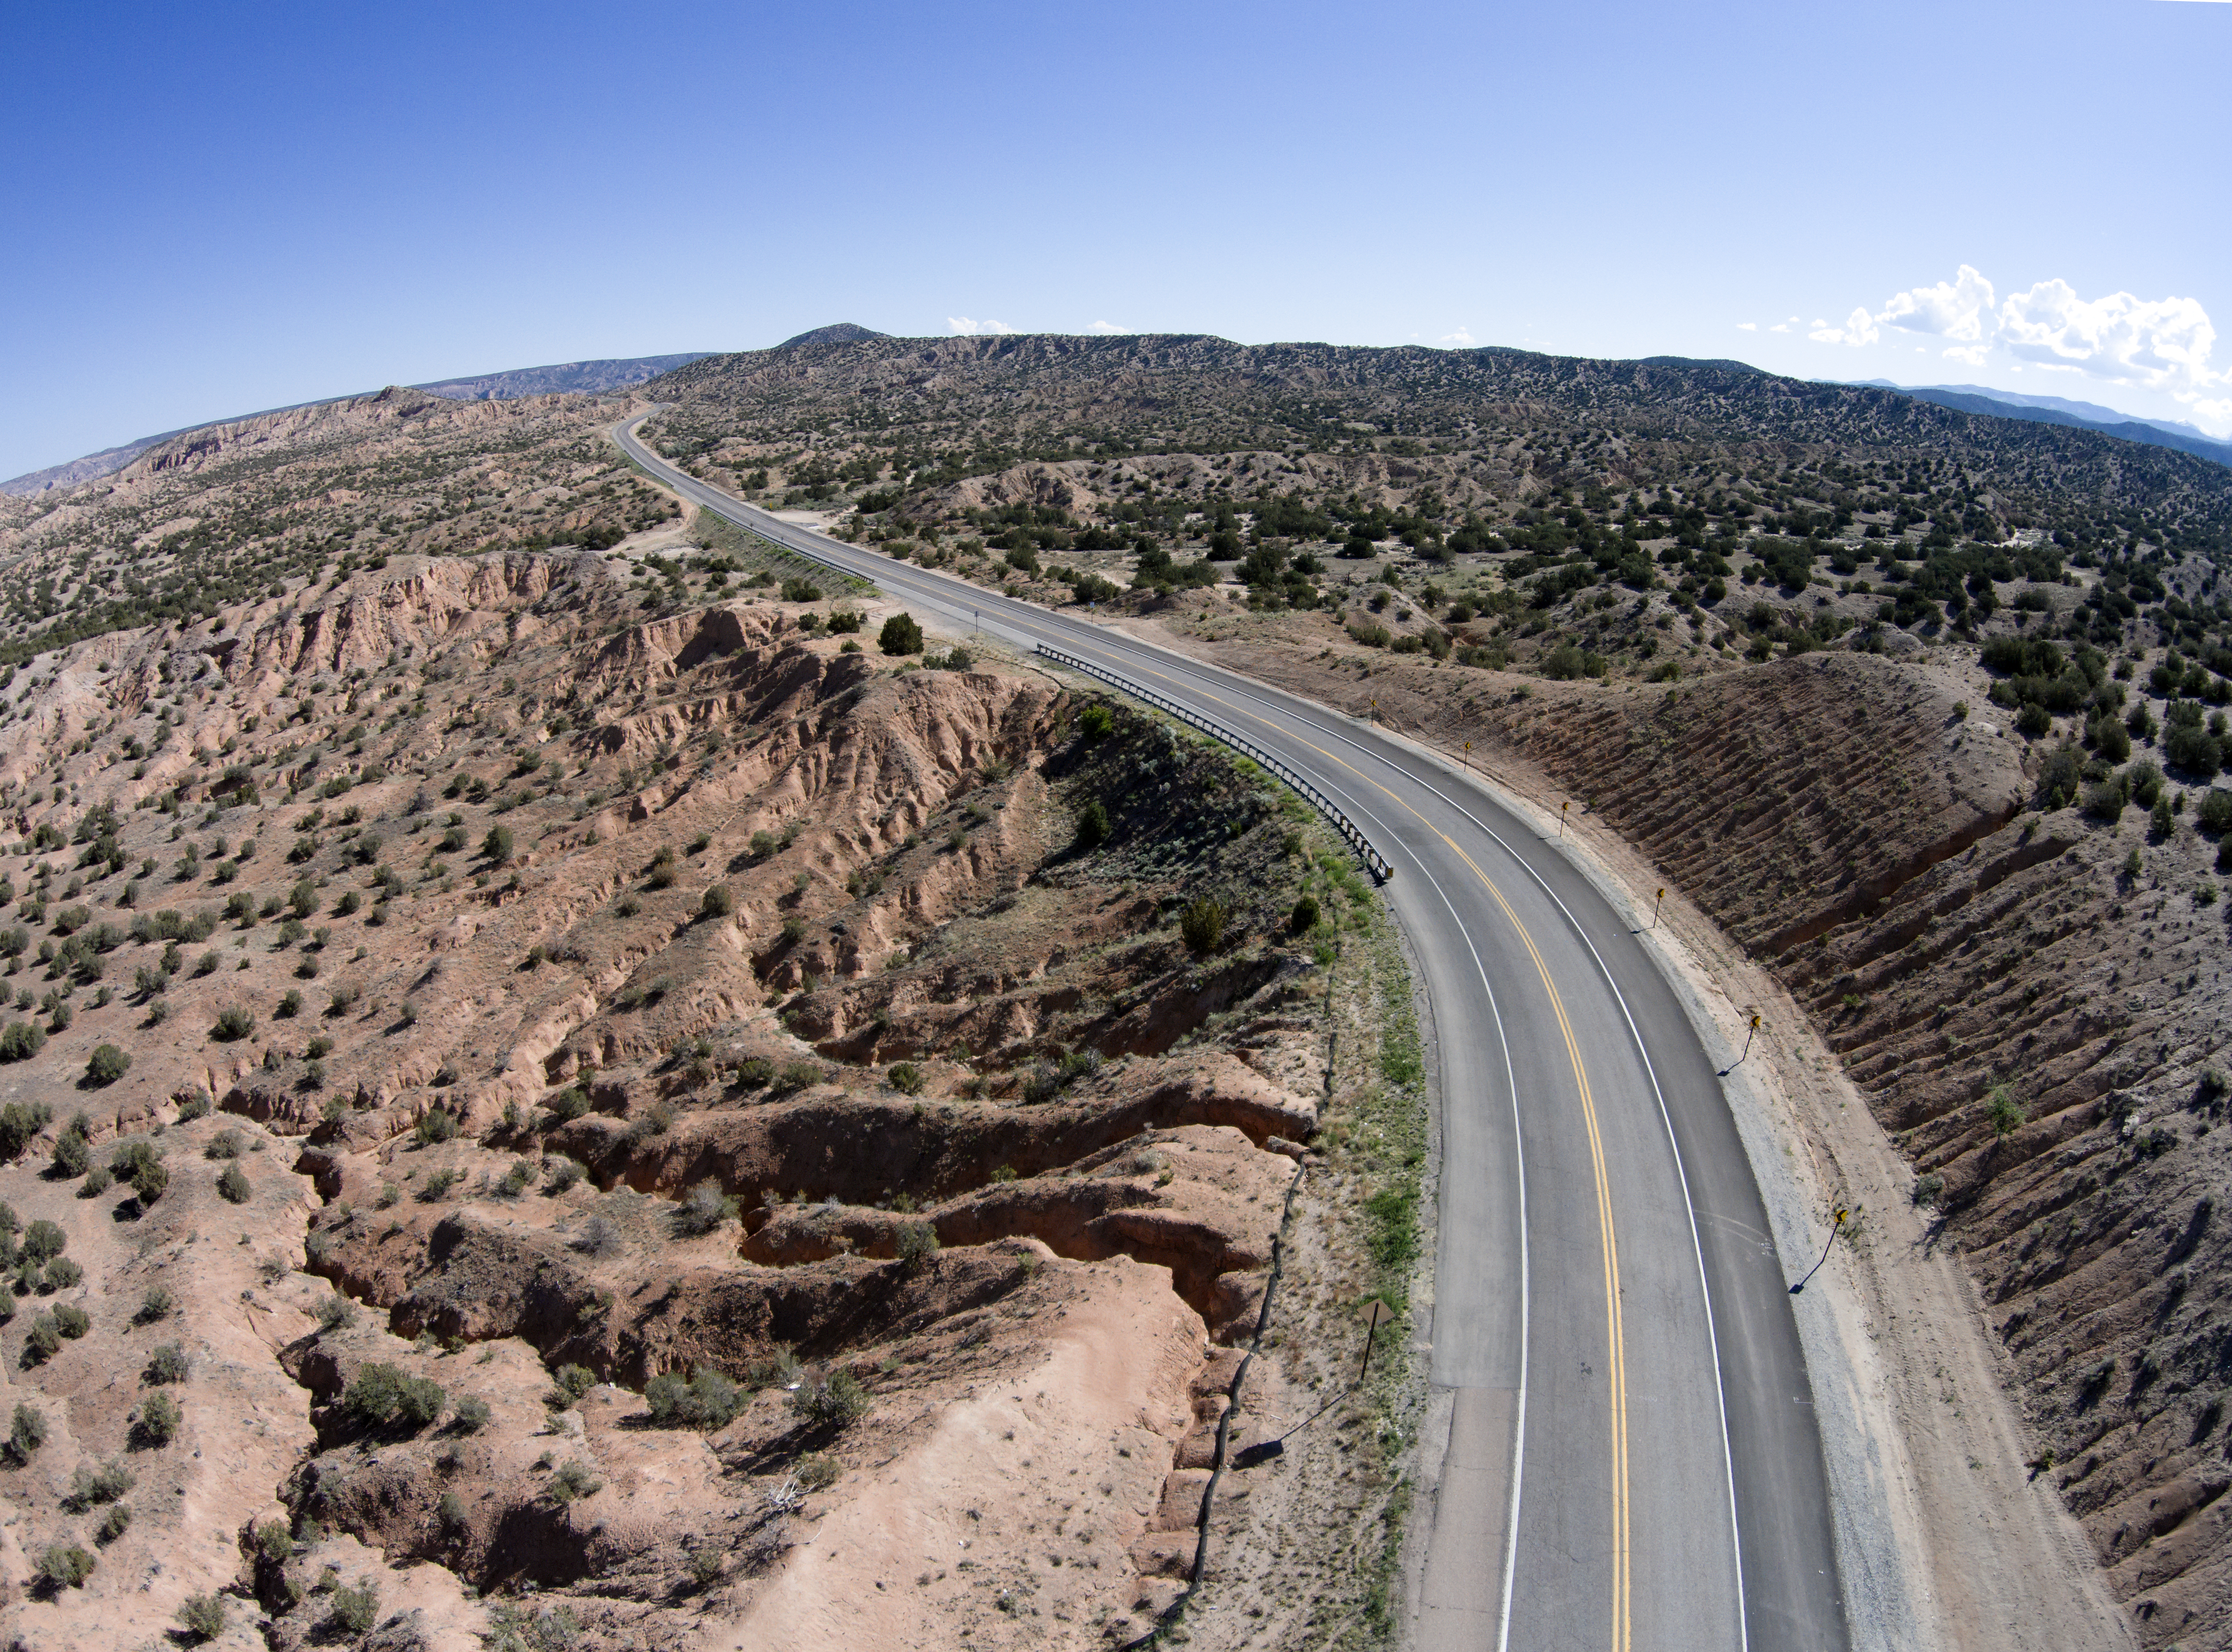 New mexico taos county llano - High Road To Taos Scenic Byway New Mexico Tourism Travel Vacation Guide